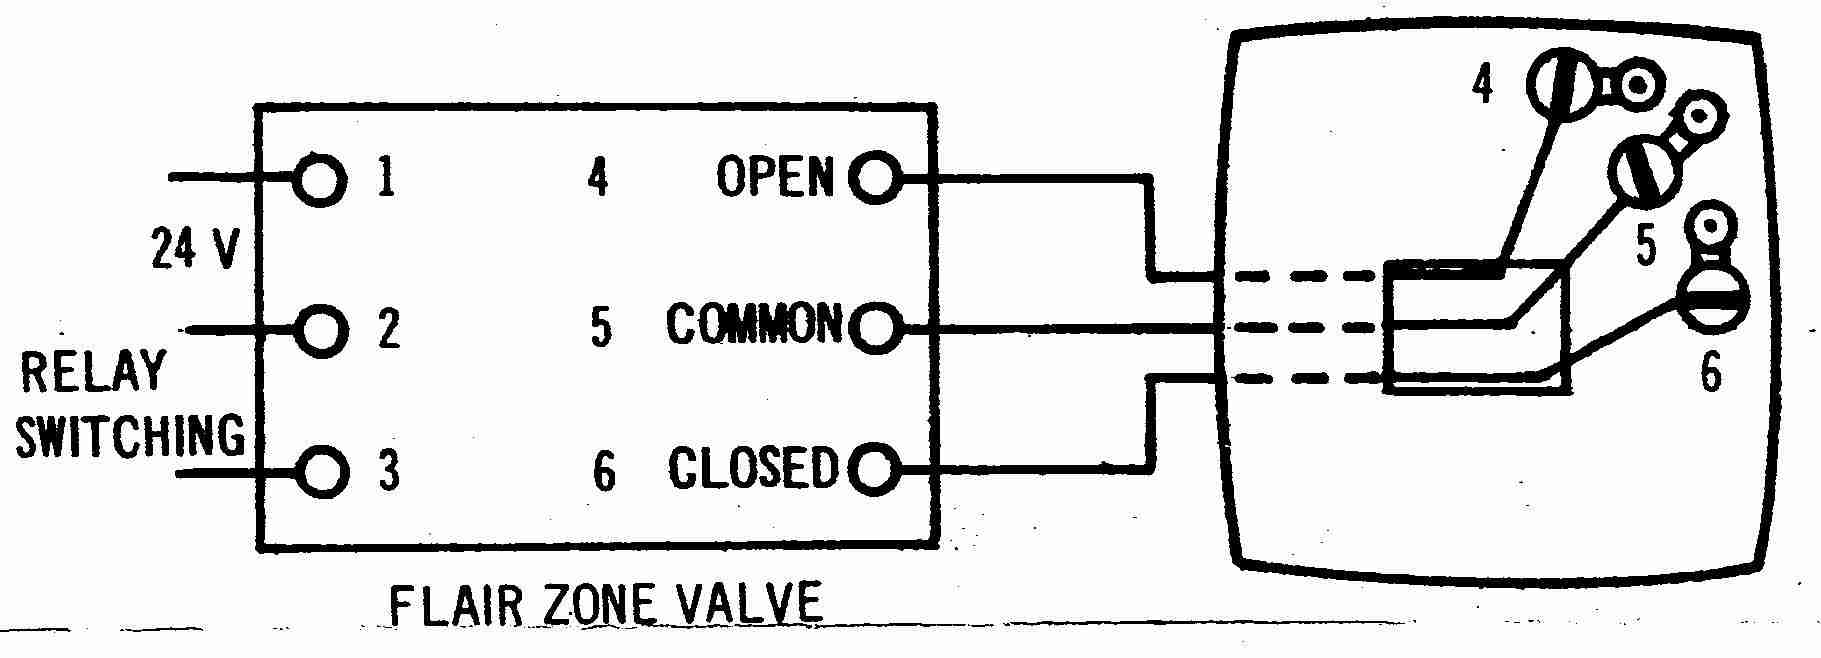 Room Thermostat Wiring Diagrams For Hvac Systems Comm Diagram Control Switches Flair 3 Wire Controlling A Zone Valve